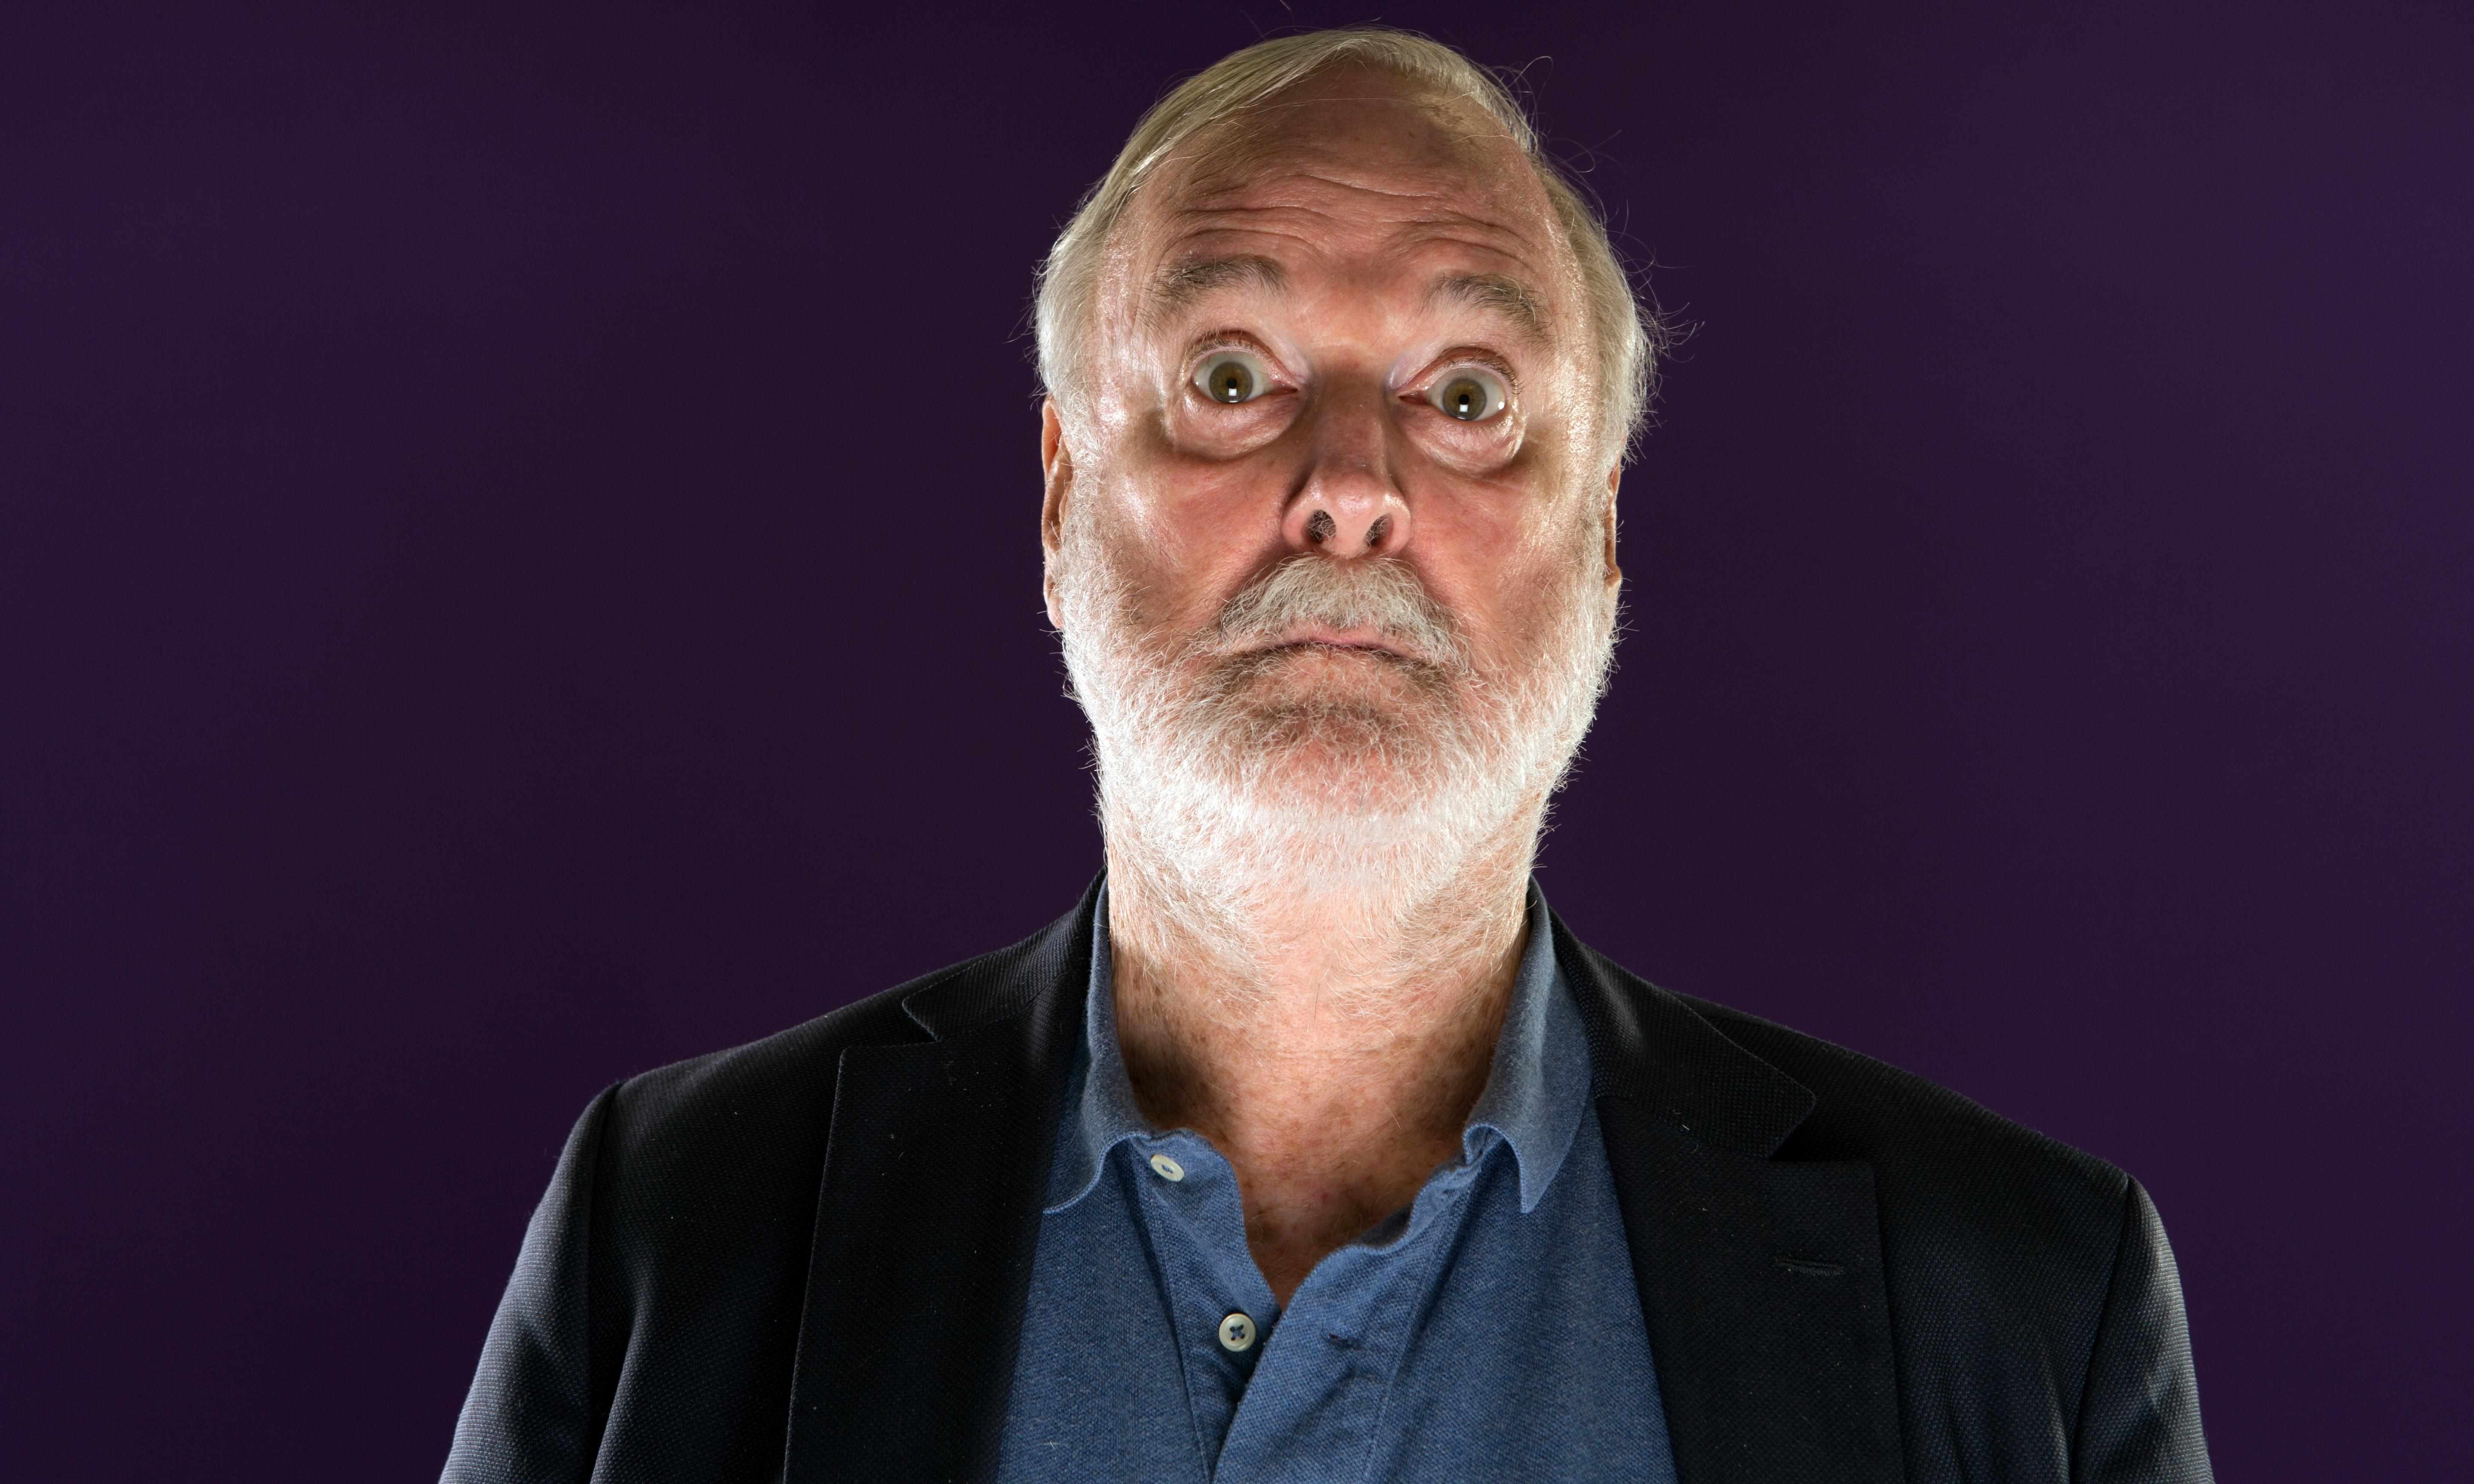 John Cleese blasts the BBC in lecture on the rise of stupidity